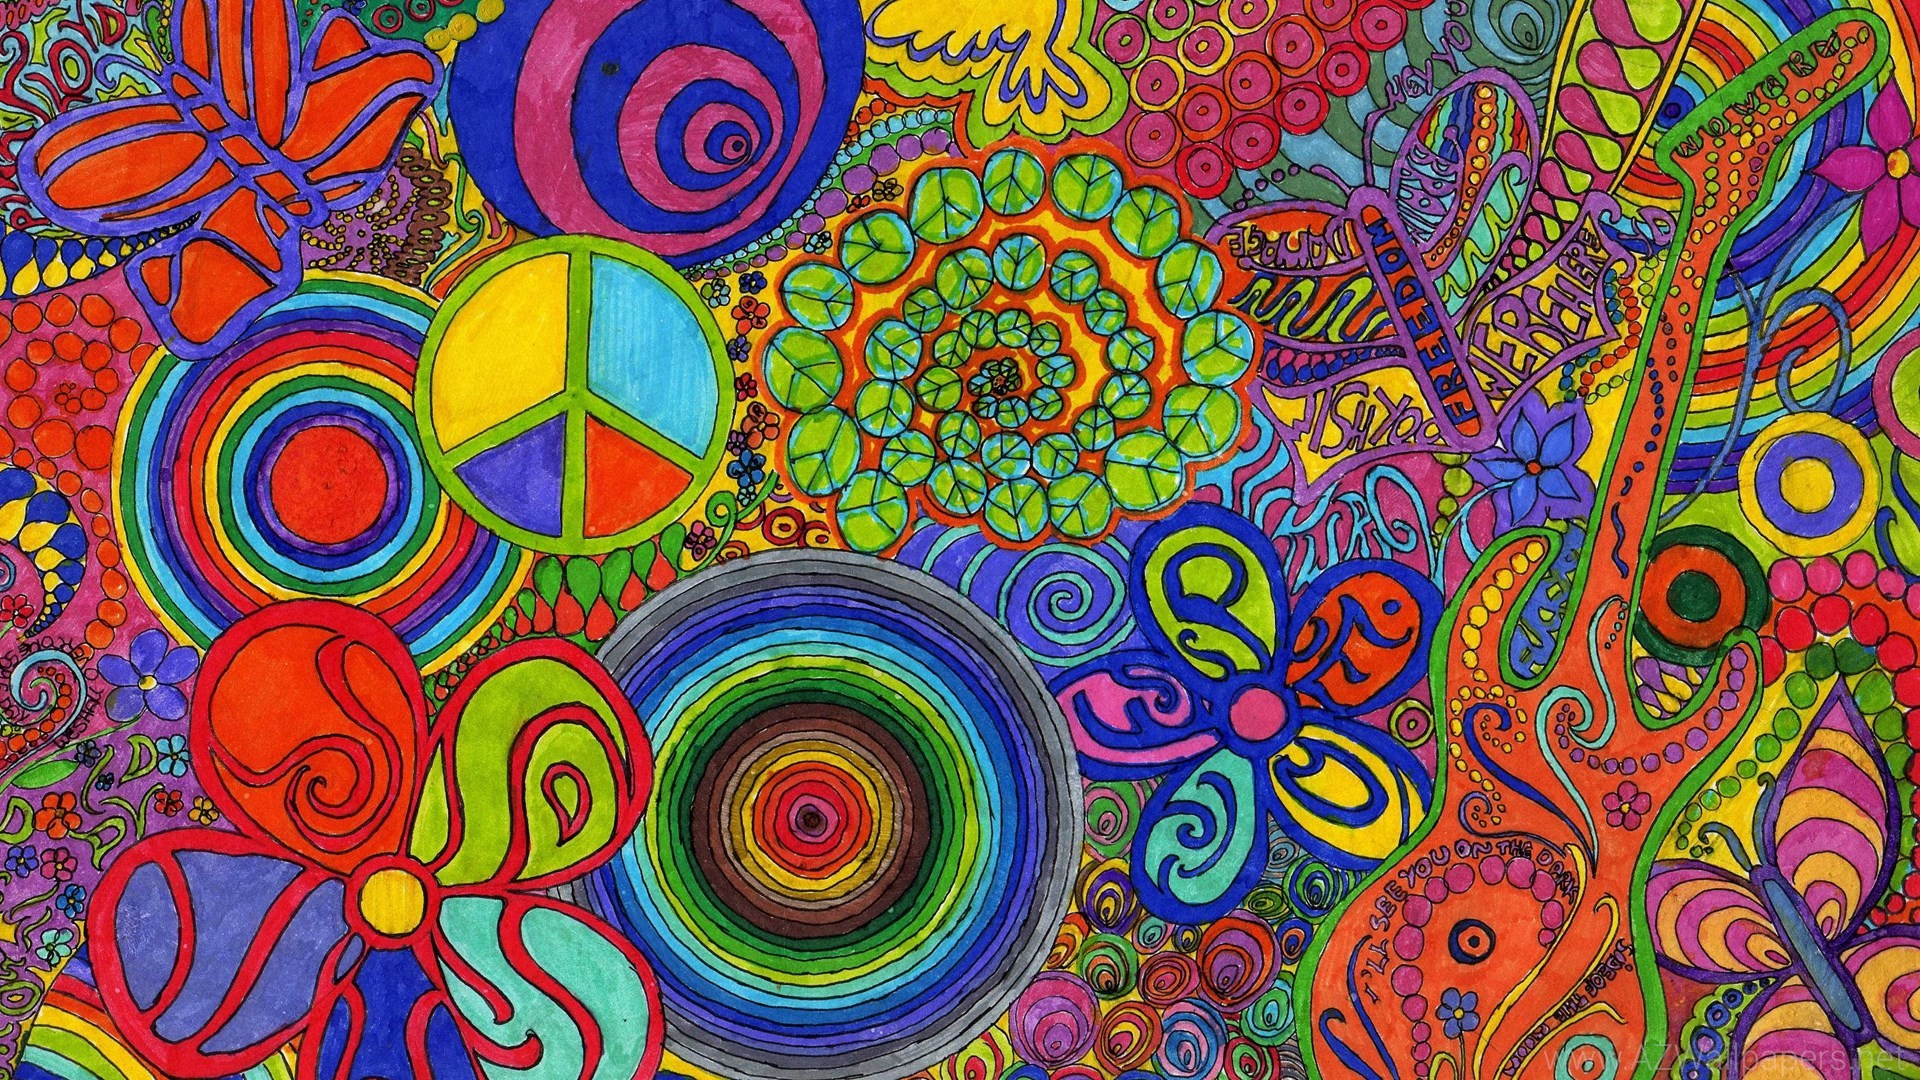 trippy hd wallpapers 1920x1080 55 images